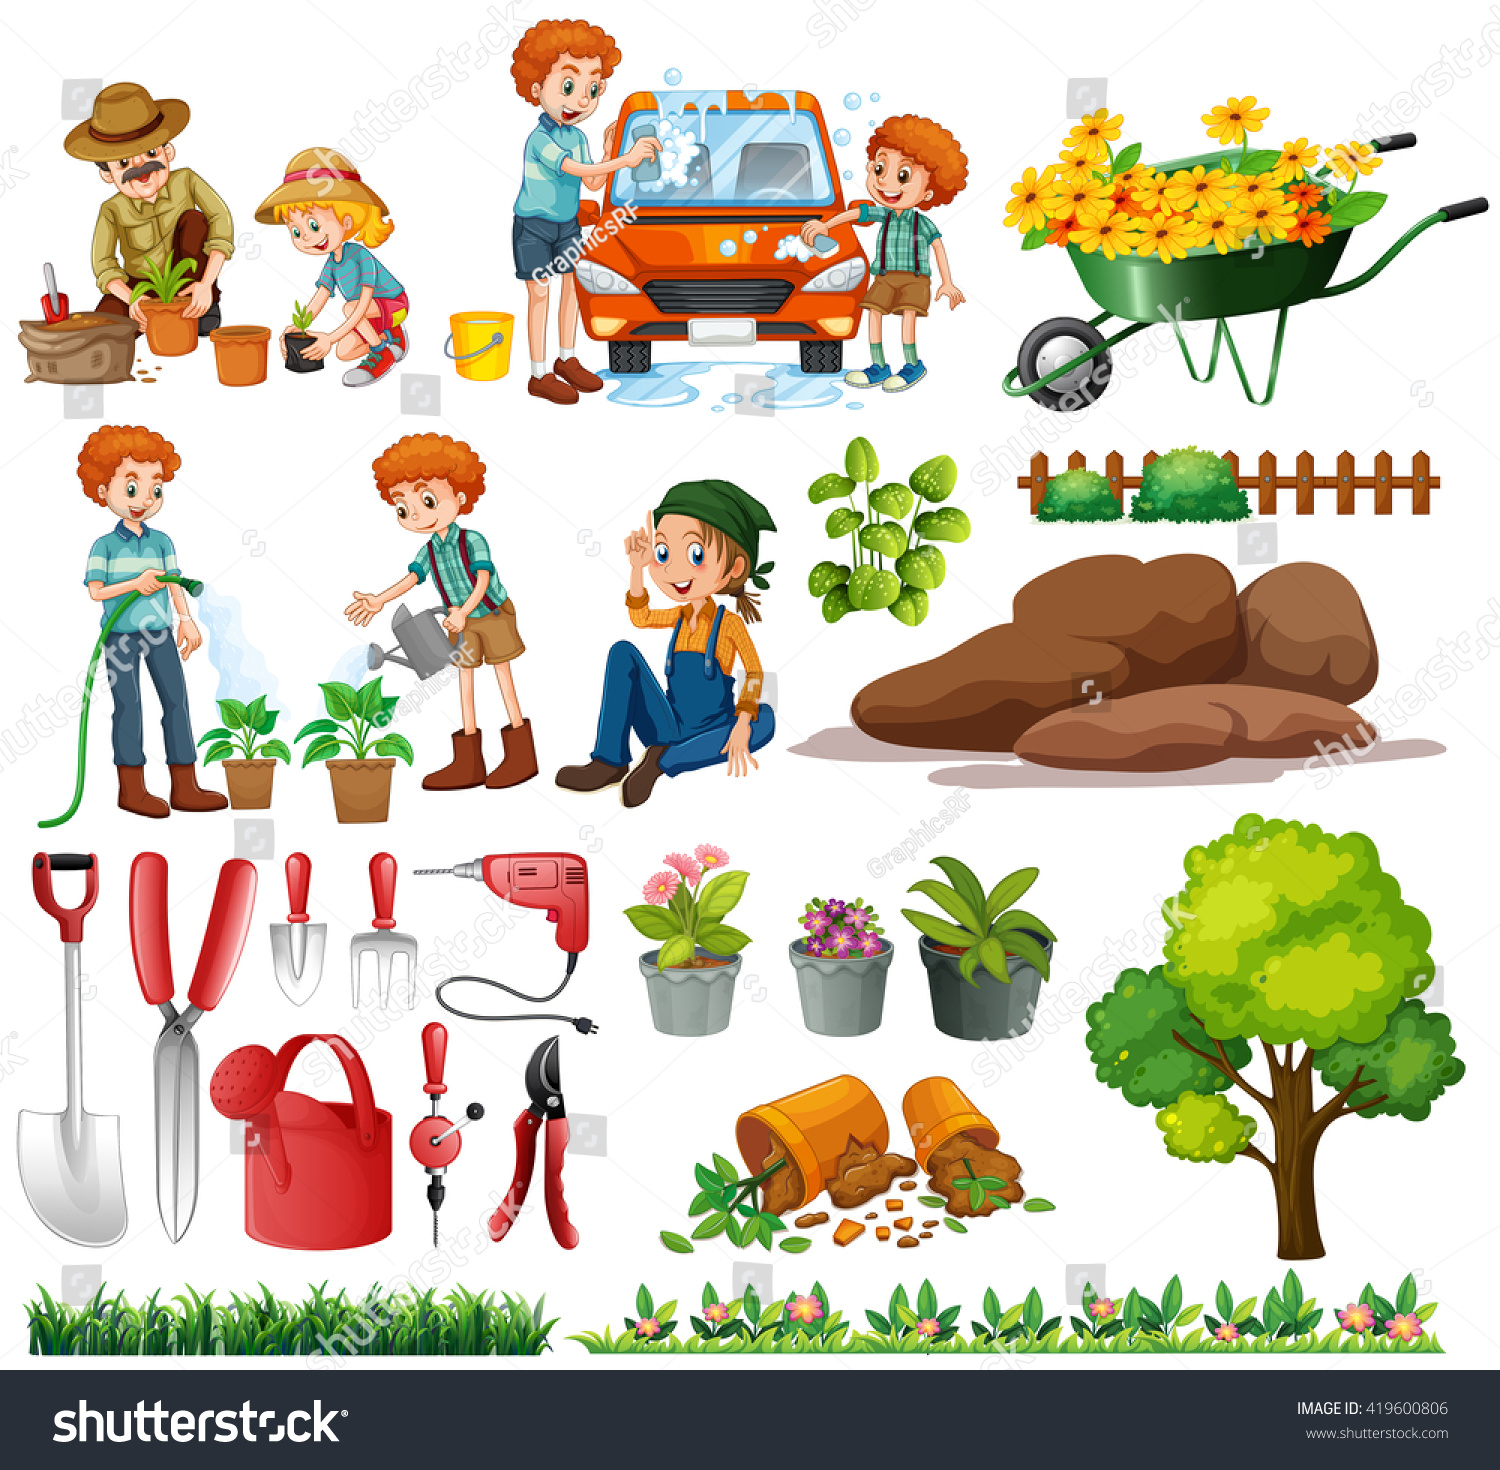 stock vector family members doing chores and gardening illustration